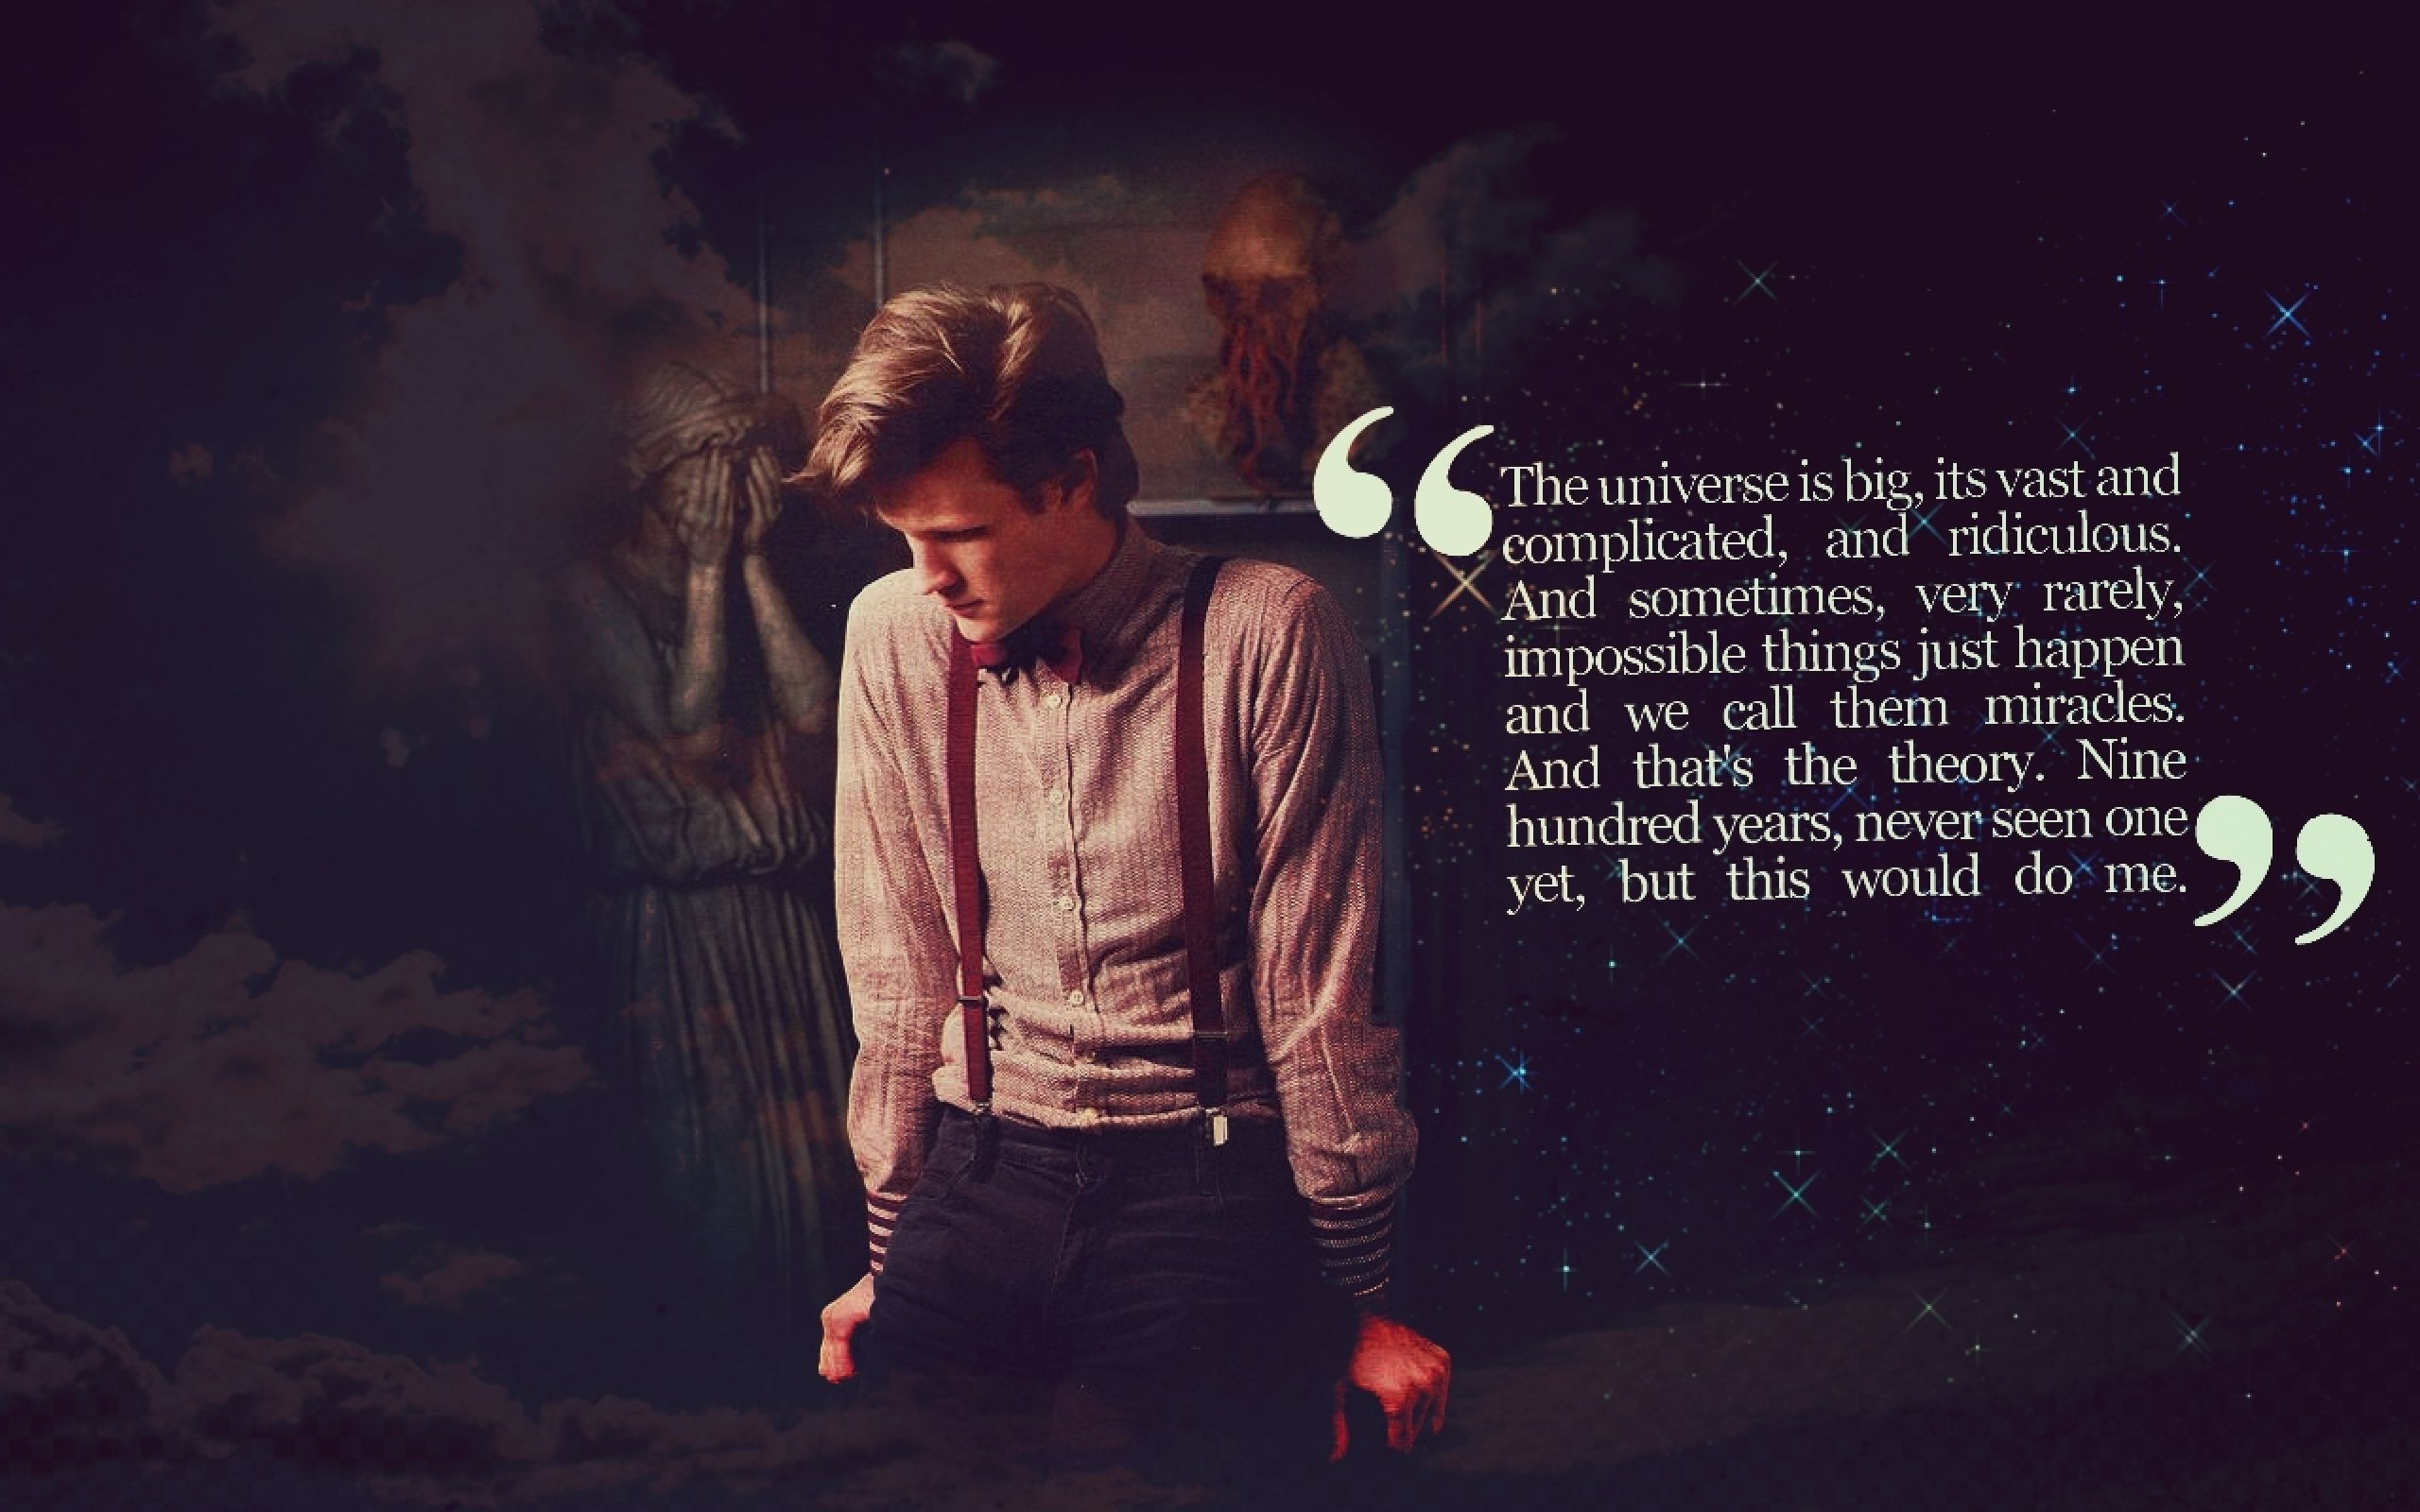 Quotes Matt Smith Eleventh Doctor Doctor Who Weeping Angel 1280x800 Wallpaper Art Hd Wallpaper Doctor Who Wallpaper Doctor Who Quotes Doctor Who Tv